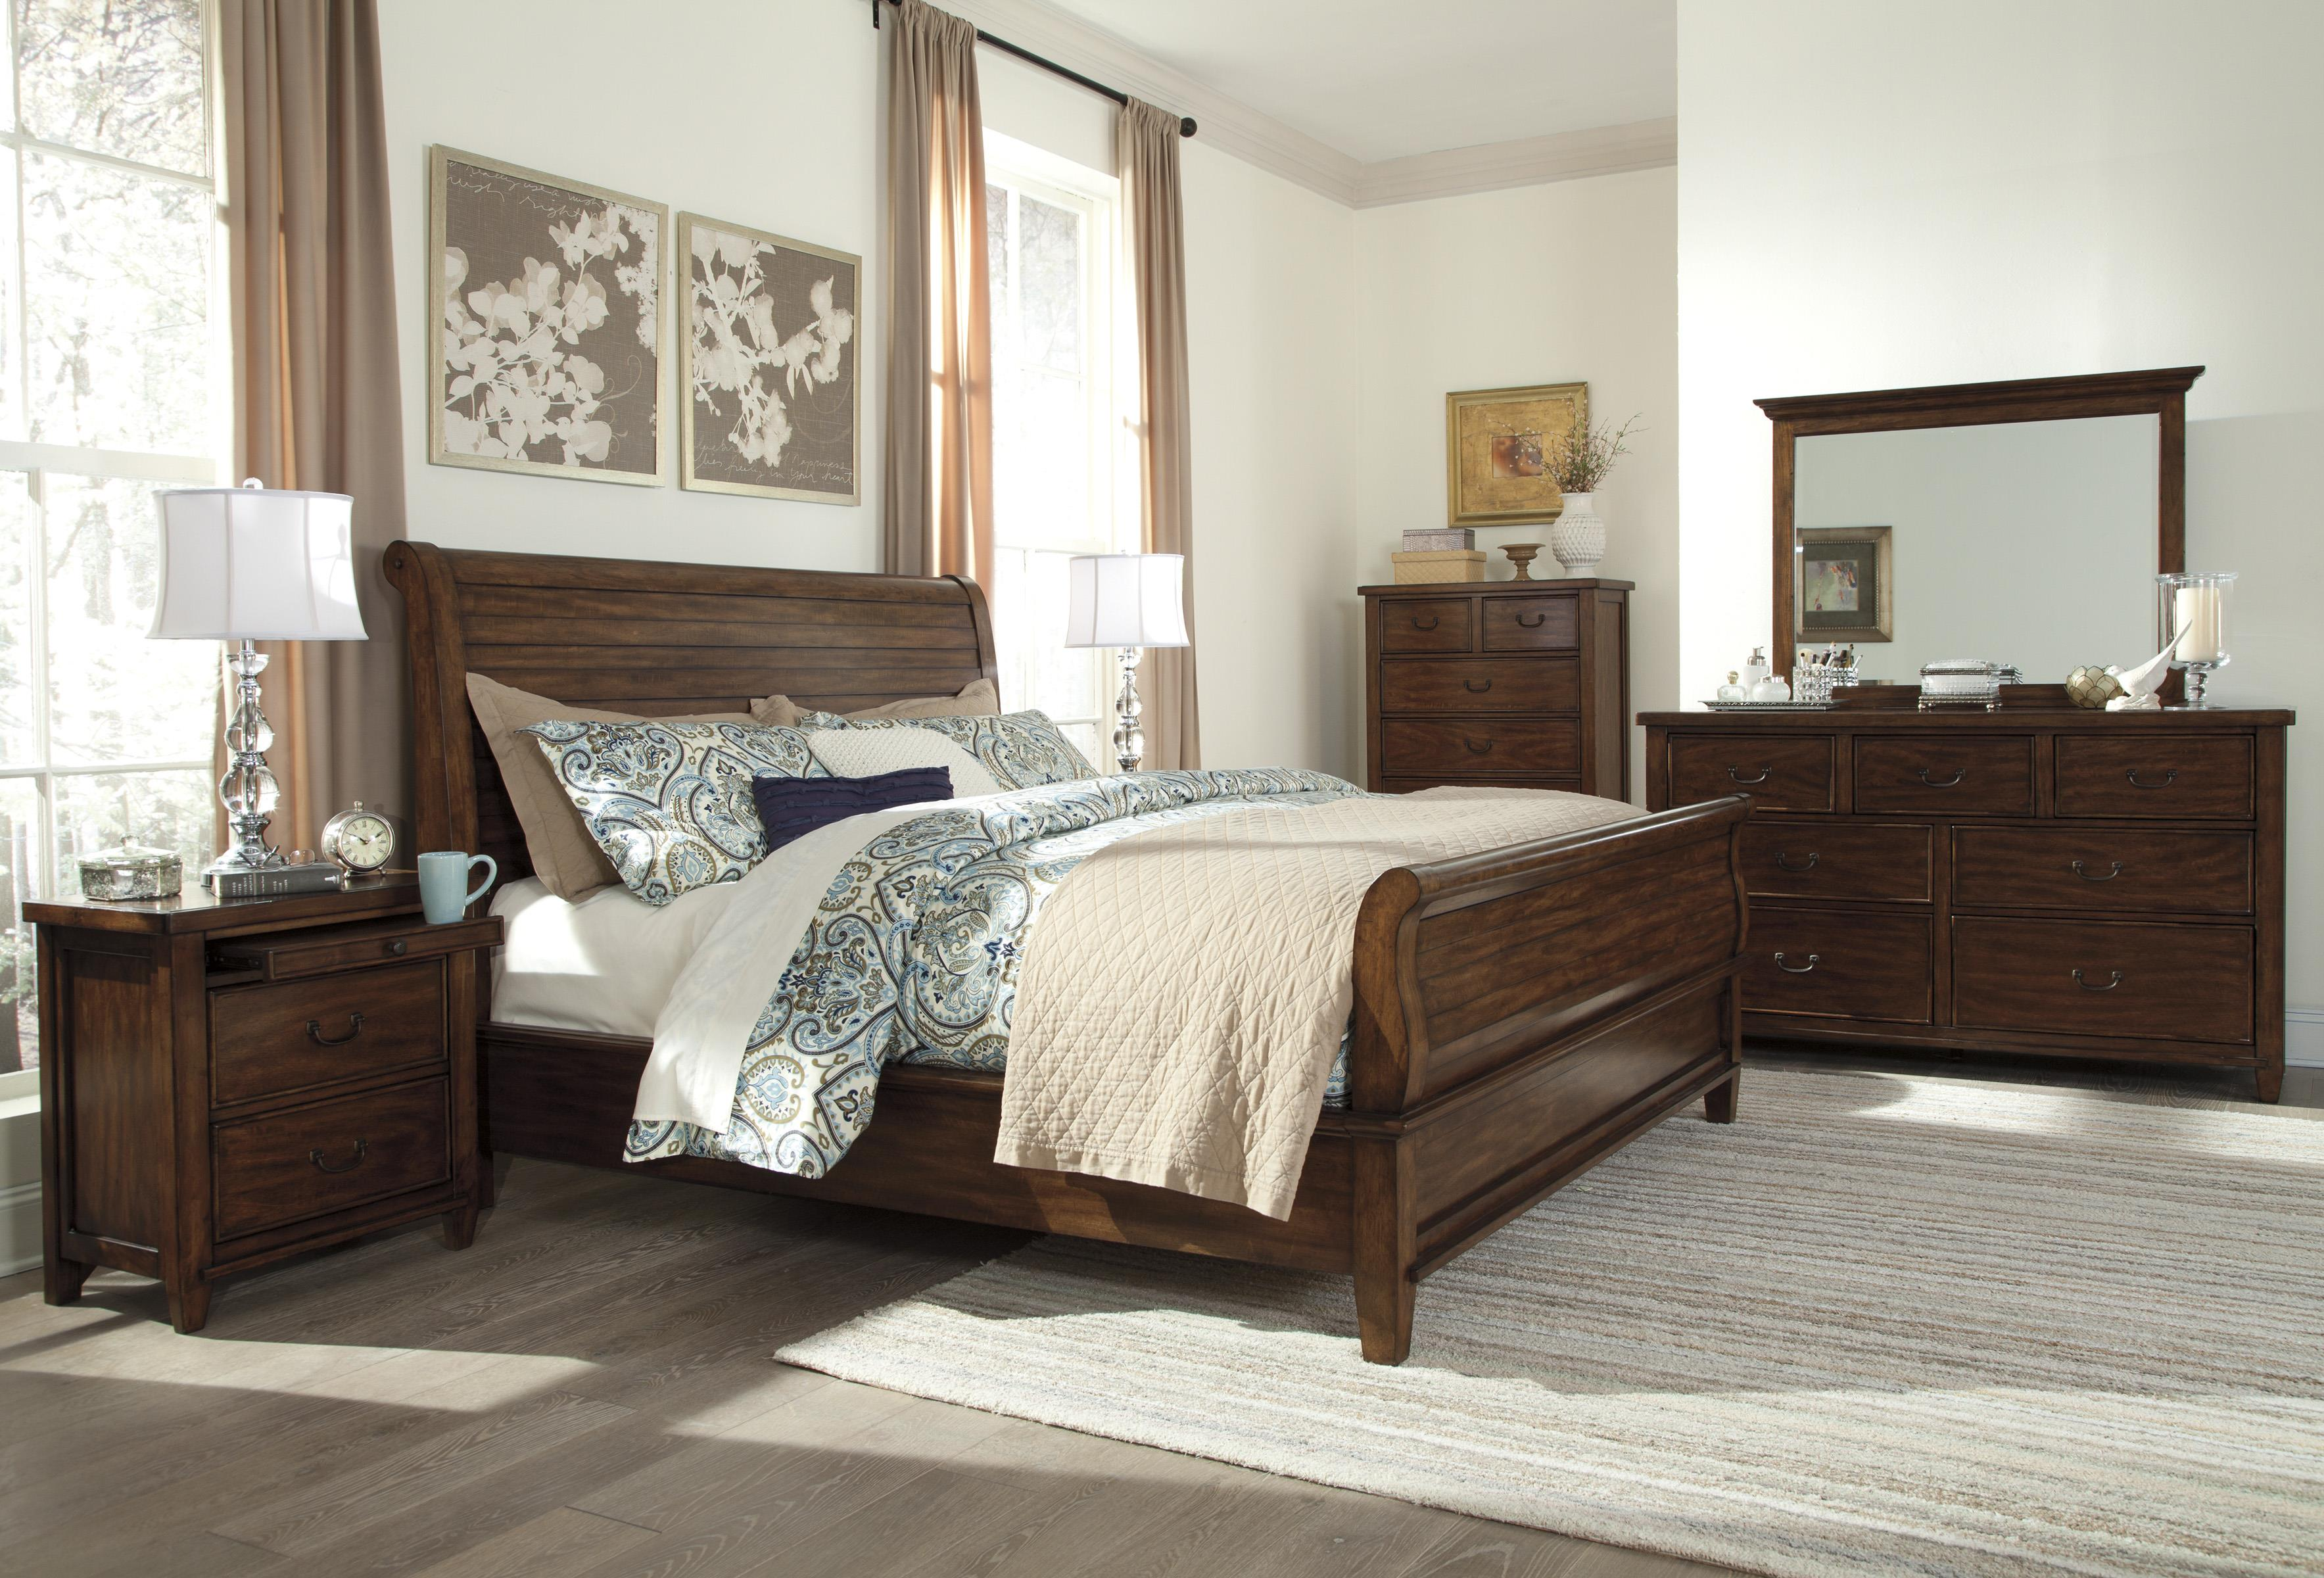 Signature Design by Ashley Chaddinfield Queen Bedroom Group - Item Number: B648 Q Bedroom Group 1